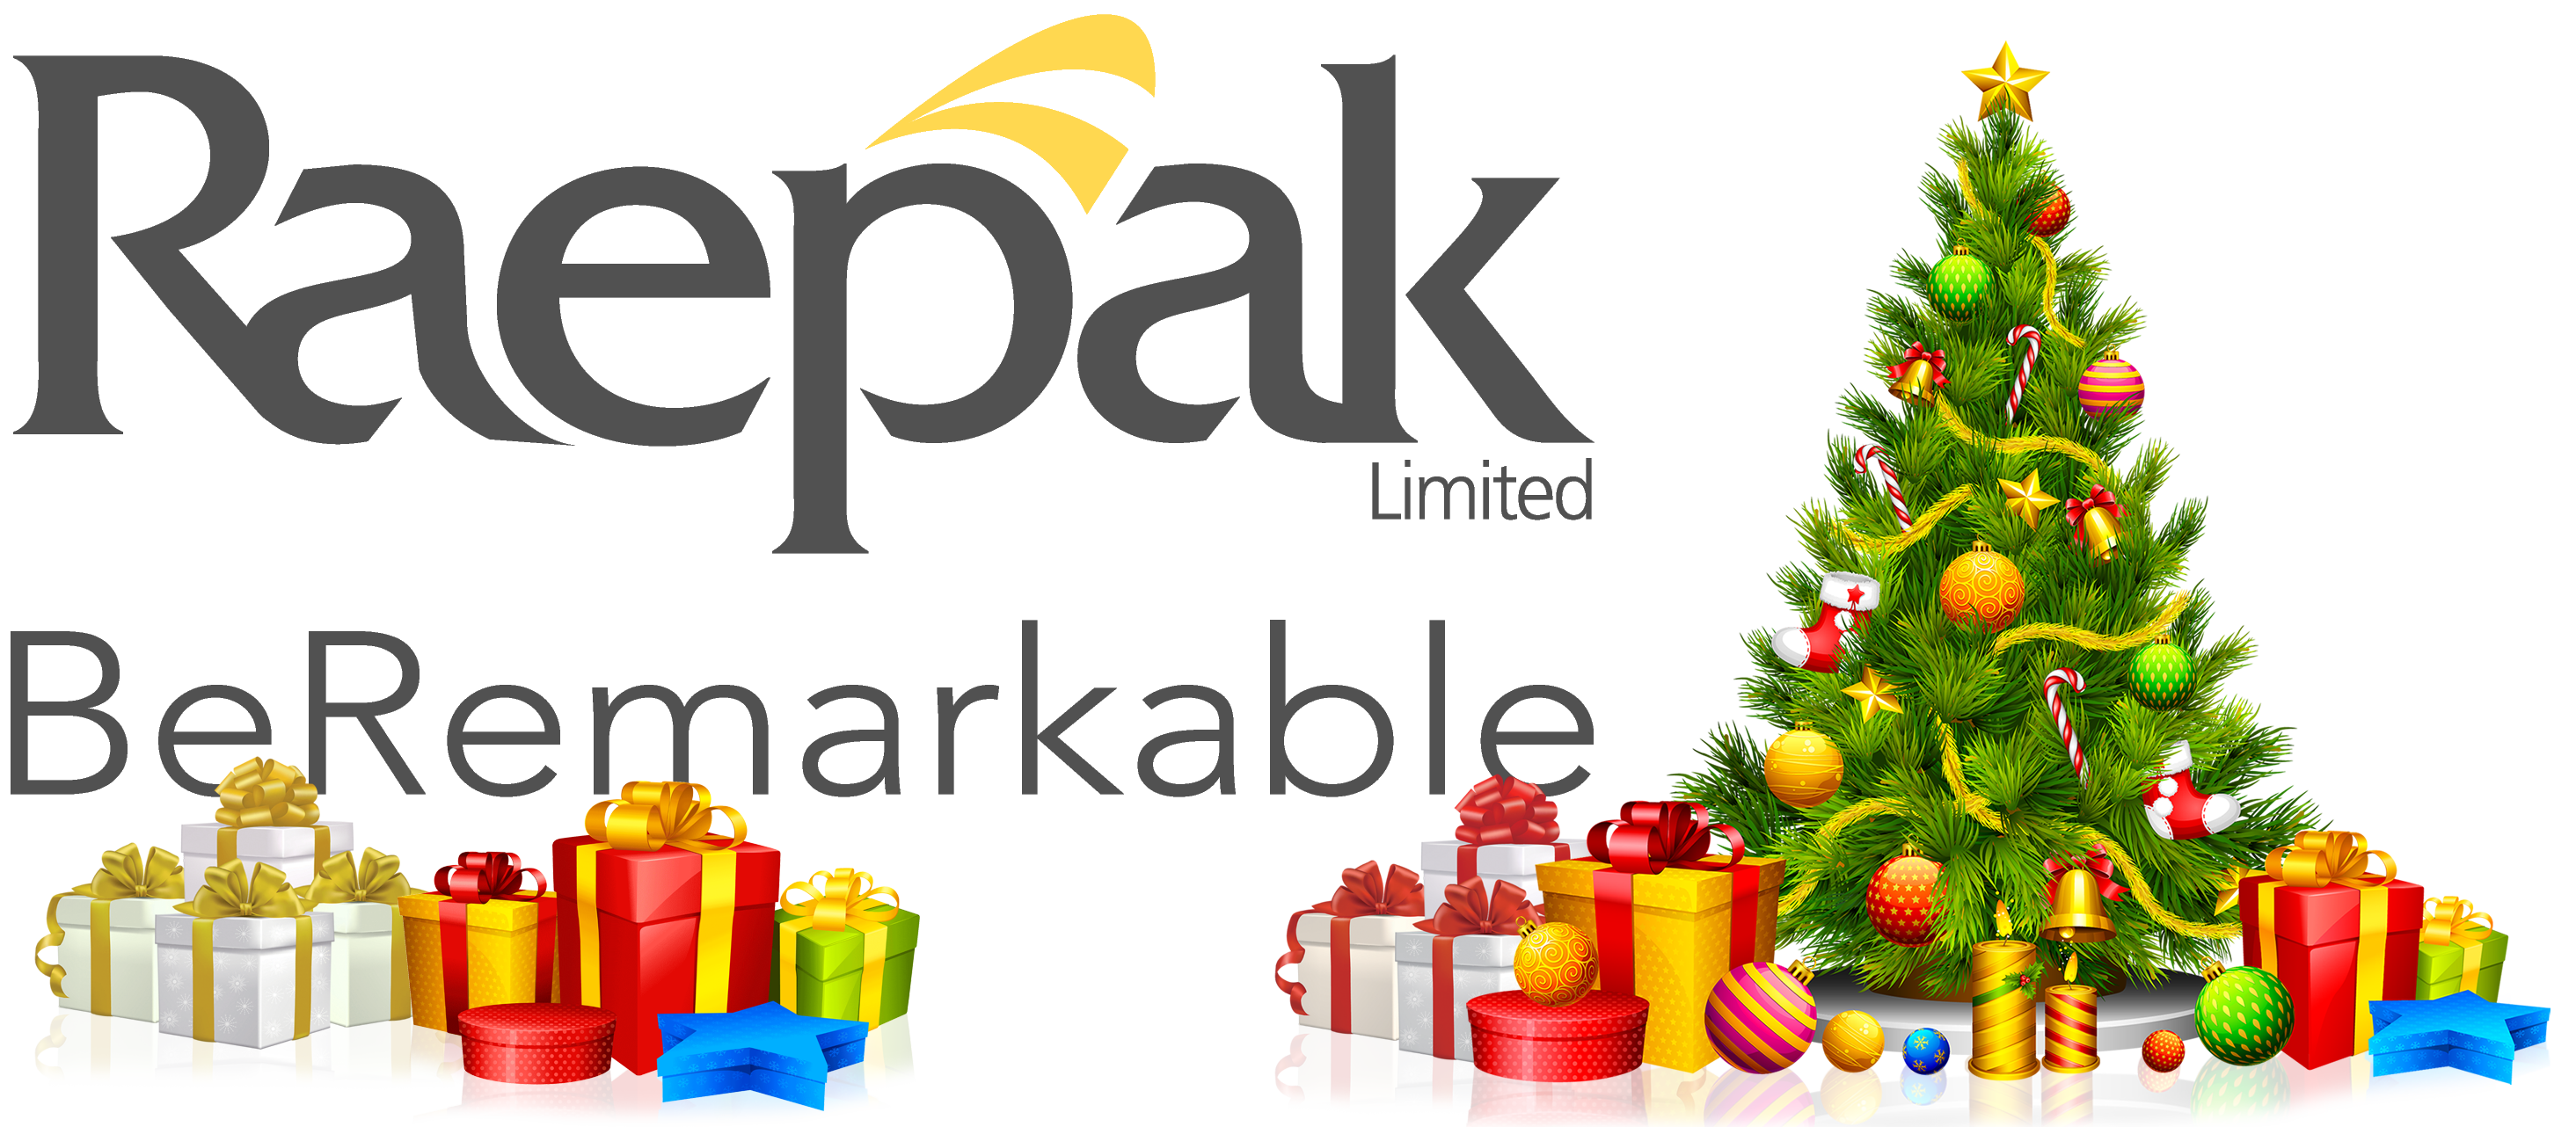 Raepak Ltd Plastic Packaging Supplier and Manufacturer